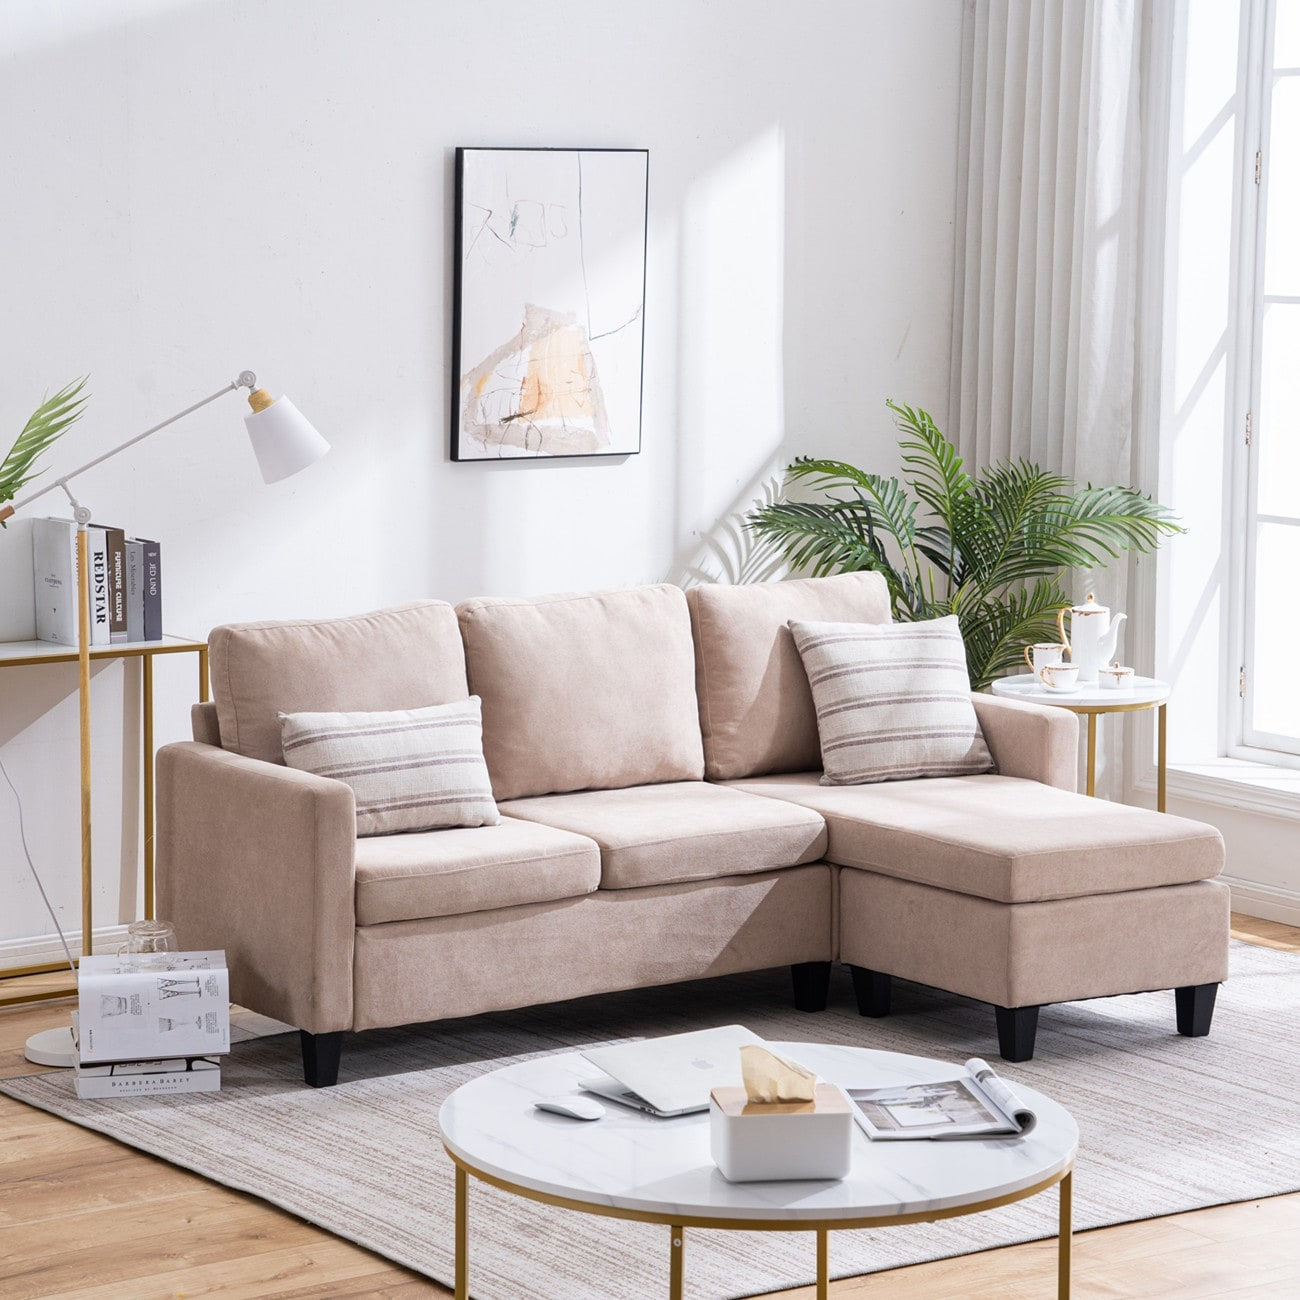 Reversible L Shaped Sectional Sofa Set Overstock 31165339